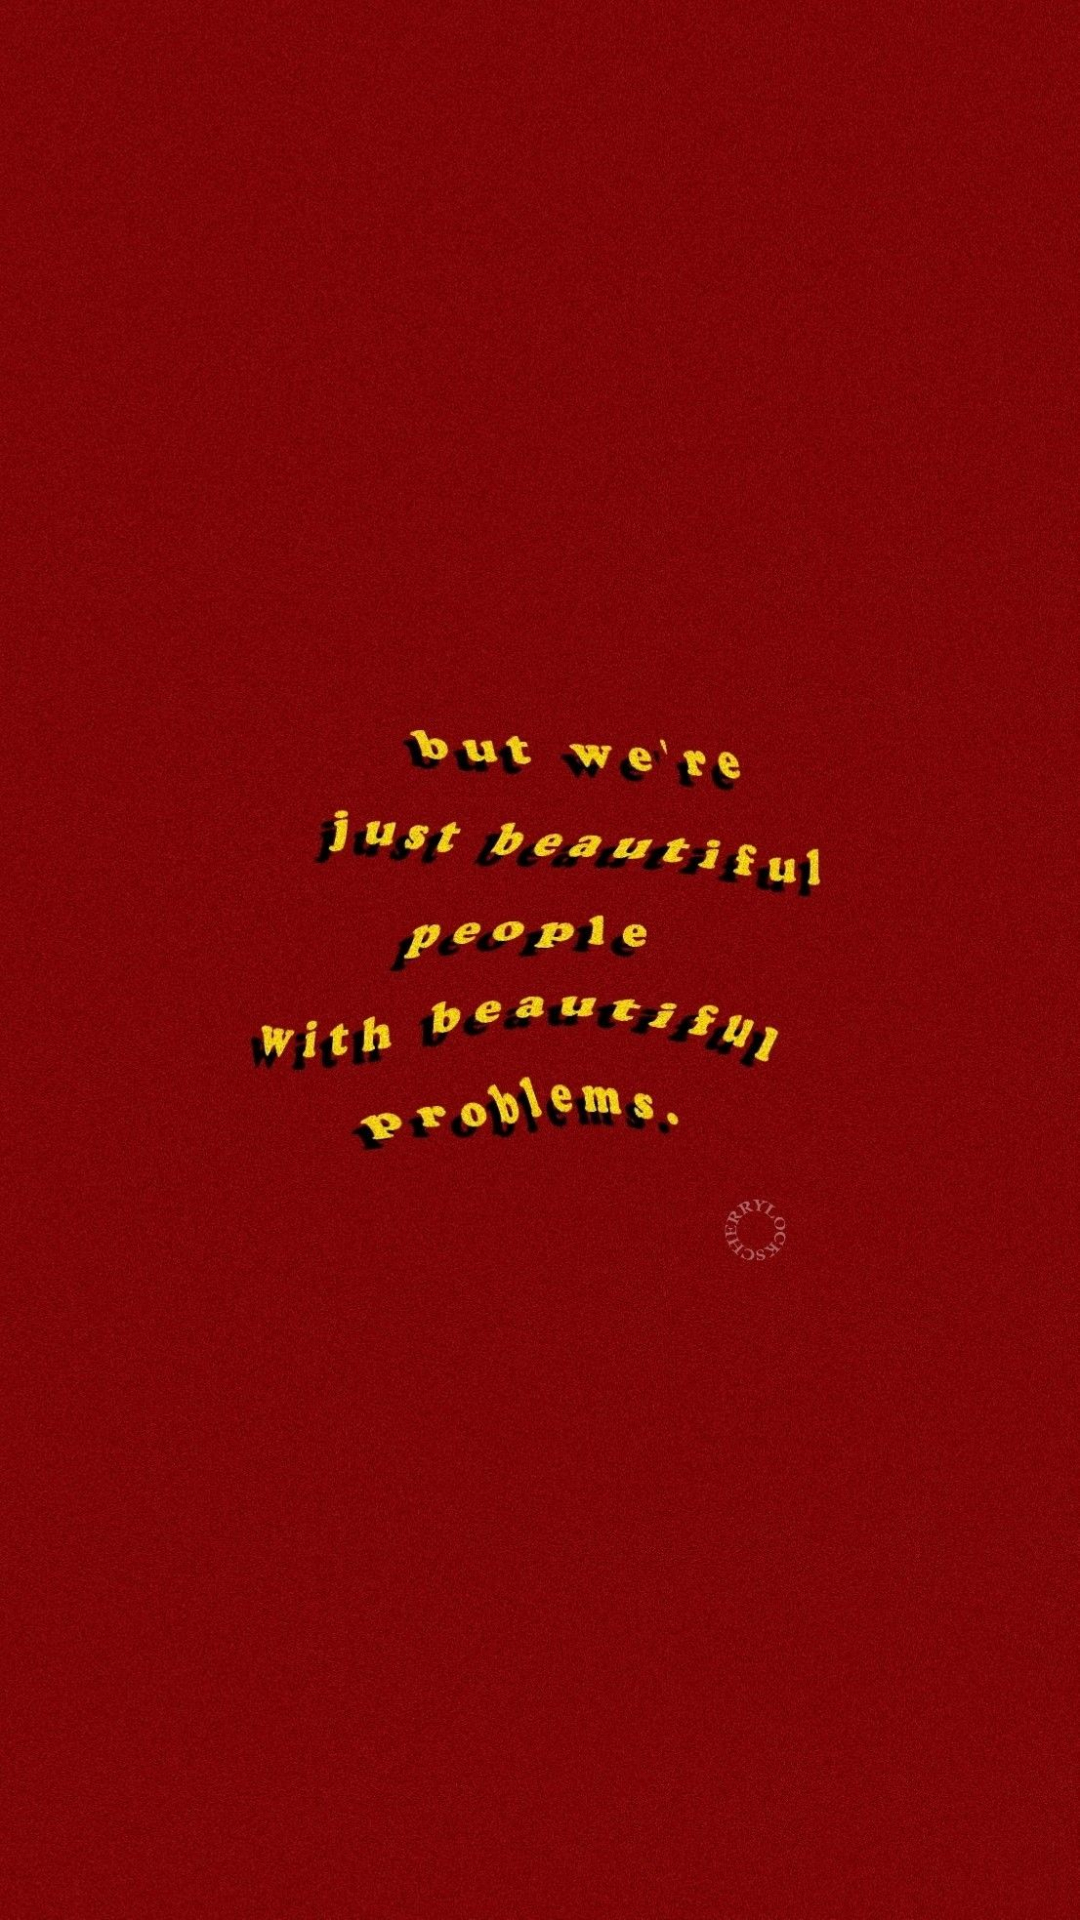 Free Download Lockscreen Red Aesthetic Words To Live By In 2019